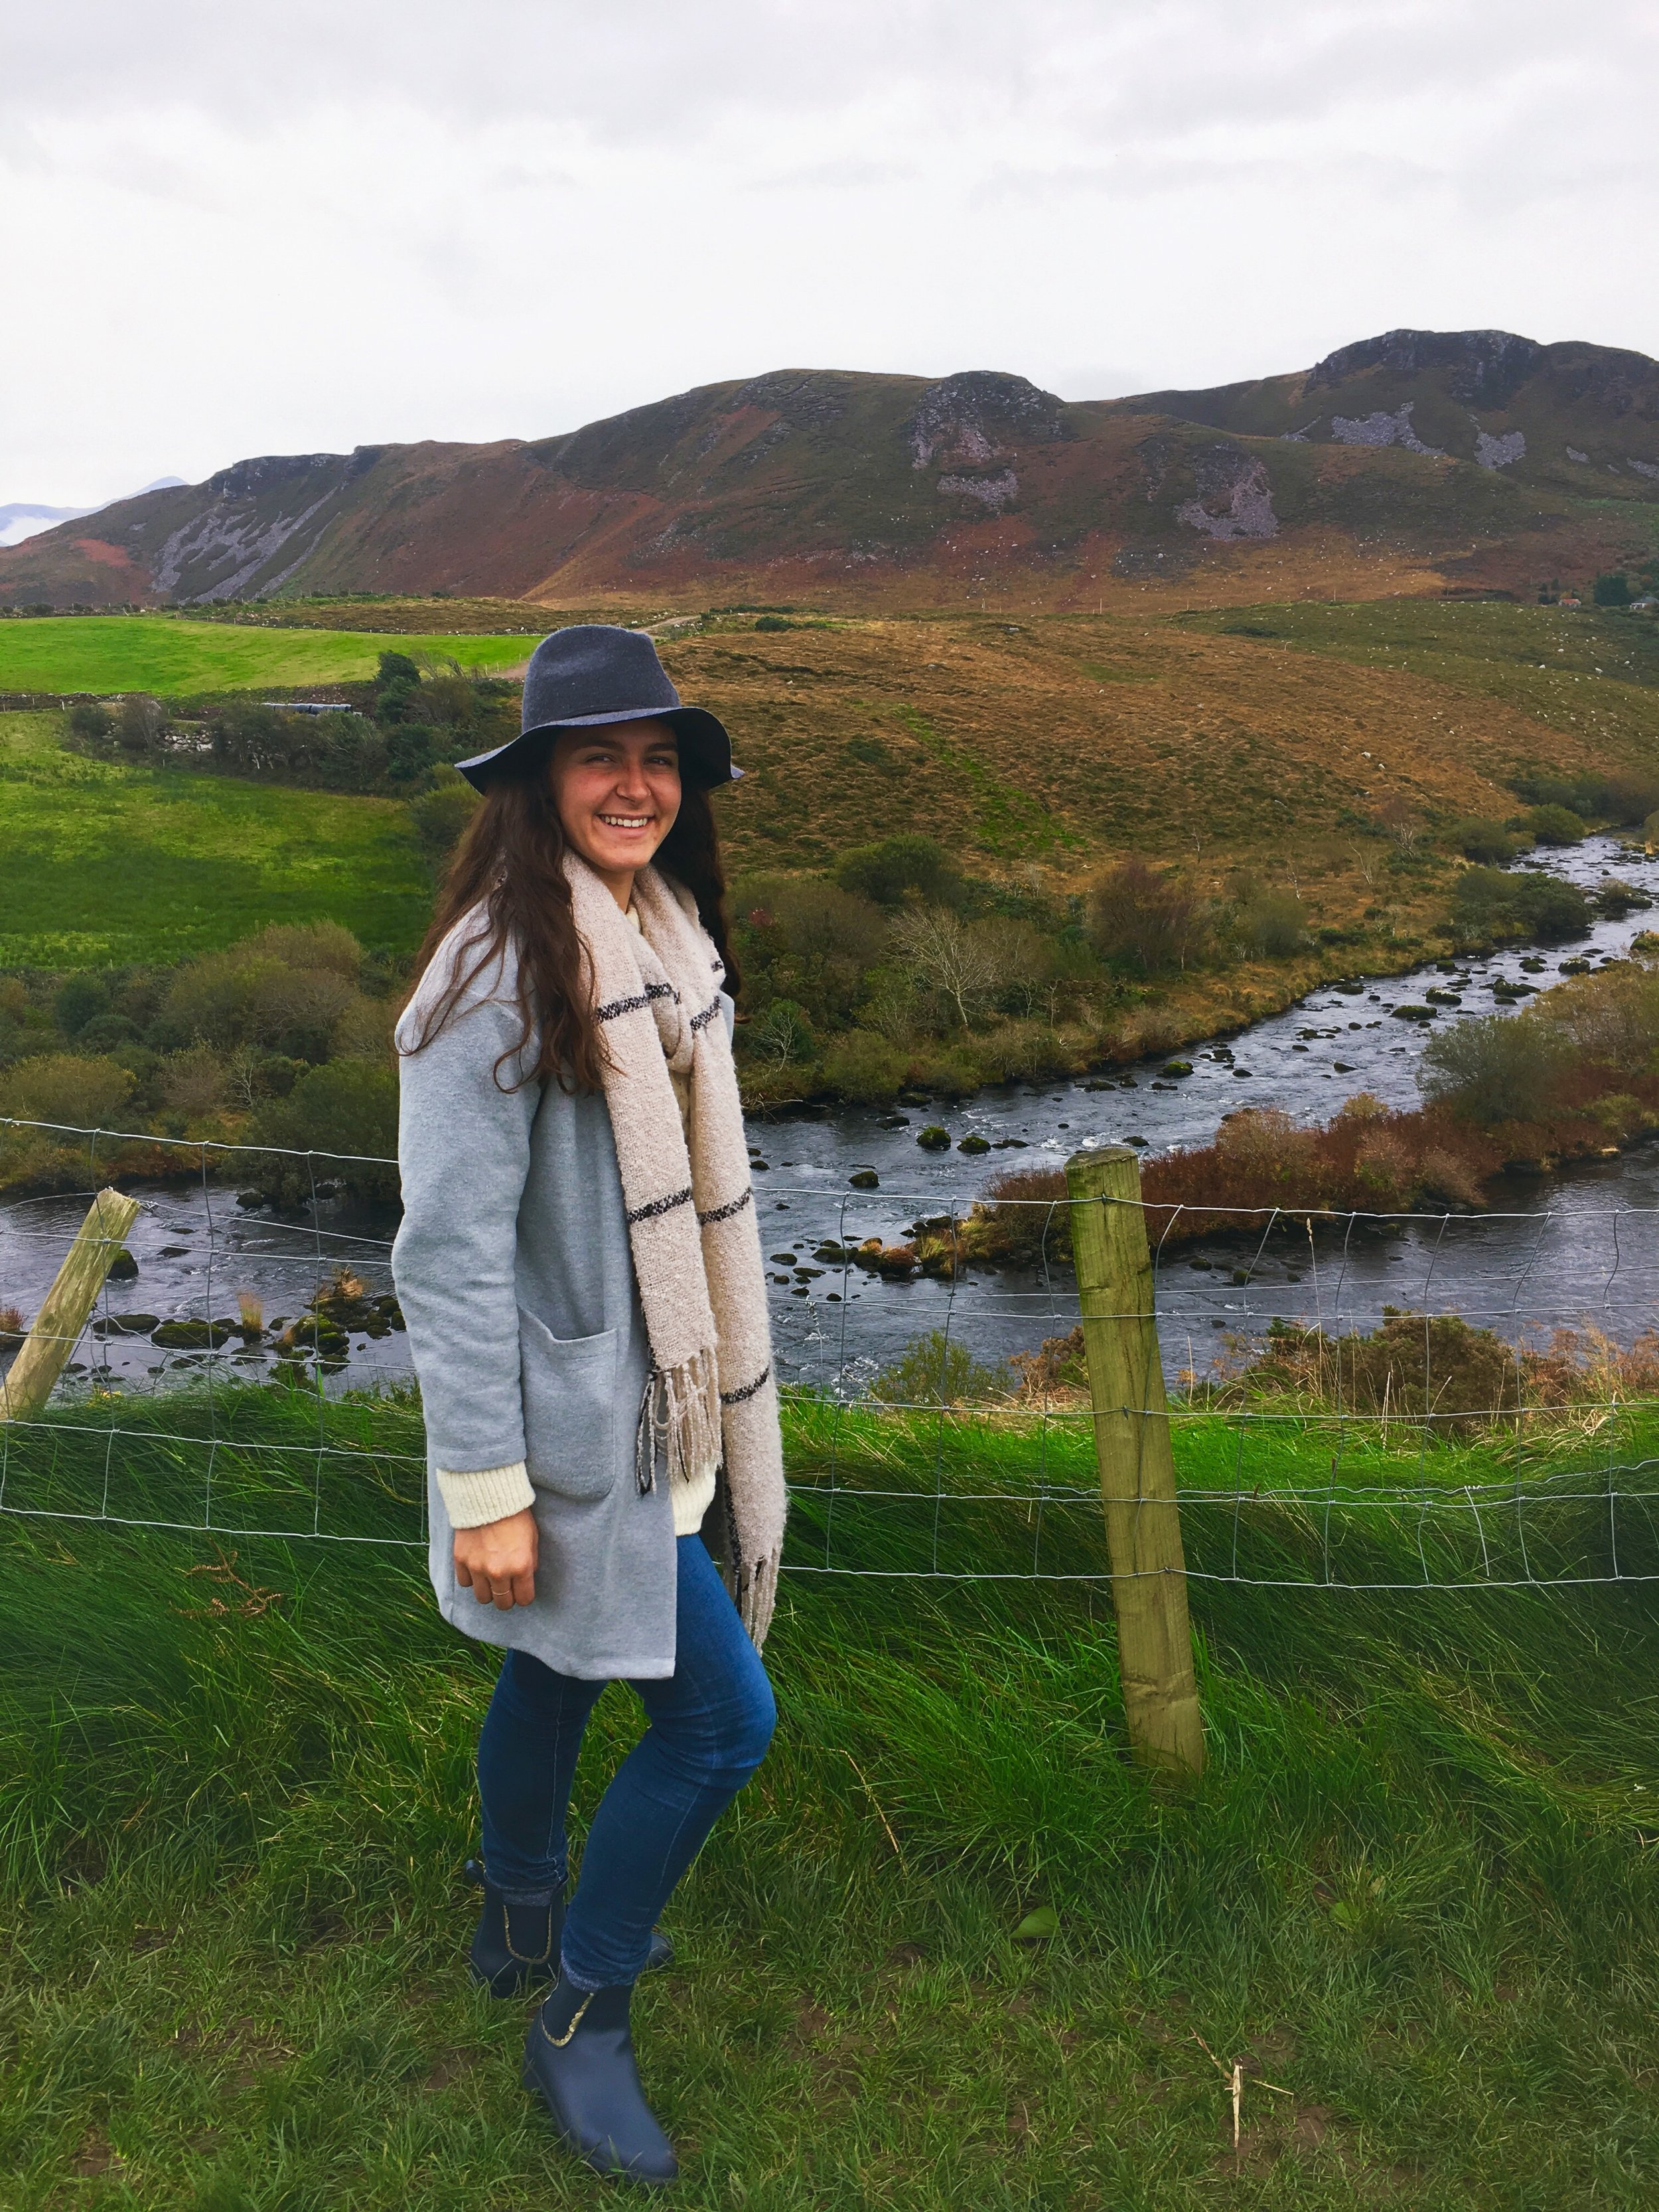 Ring of Kerry, Ireland 10.30.17   I'm finally adjusting to the wet weather here in Ireland thanks to the help of my Jack Rogers wellies (under $40!) Shop my Fall essentials as I travel throughout Europe.  Shop here.